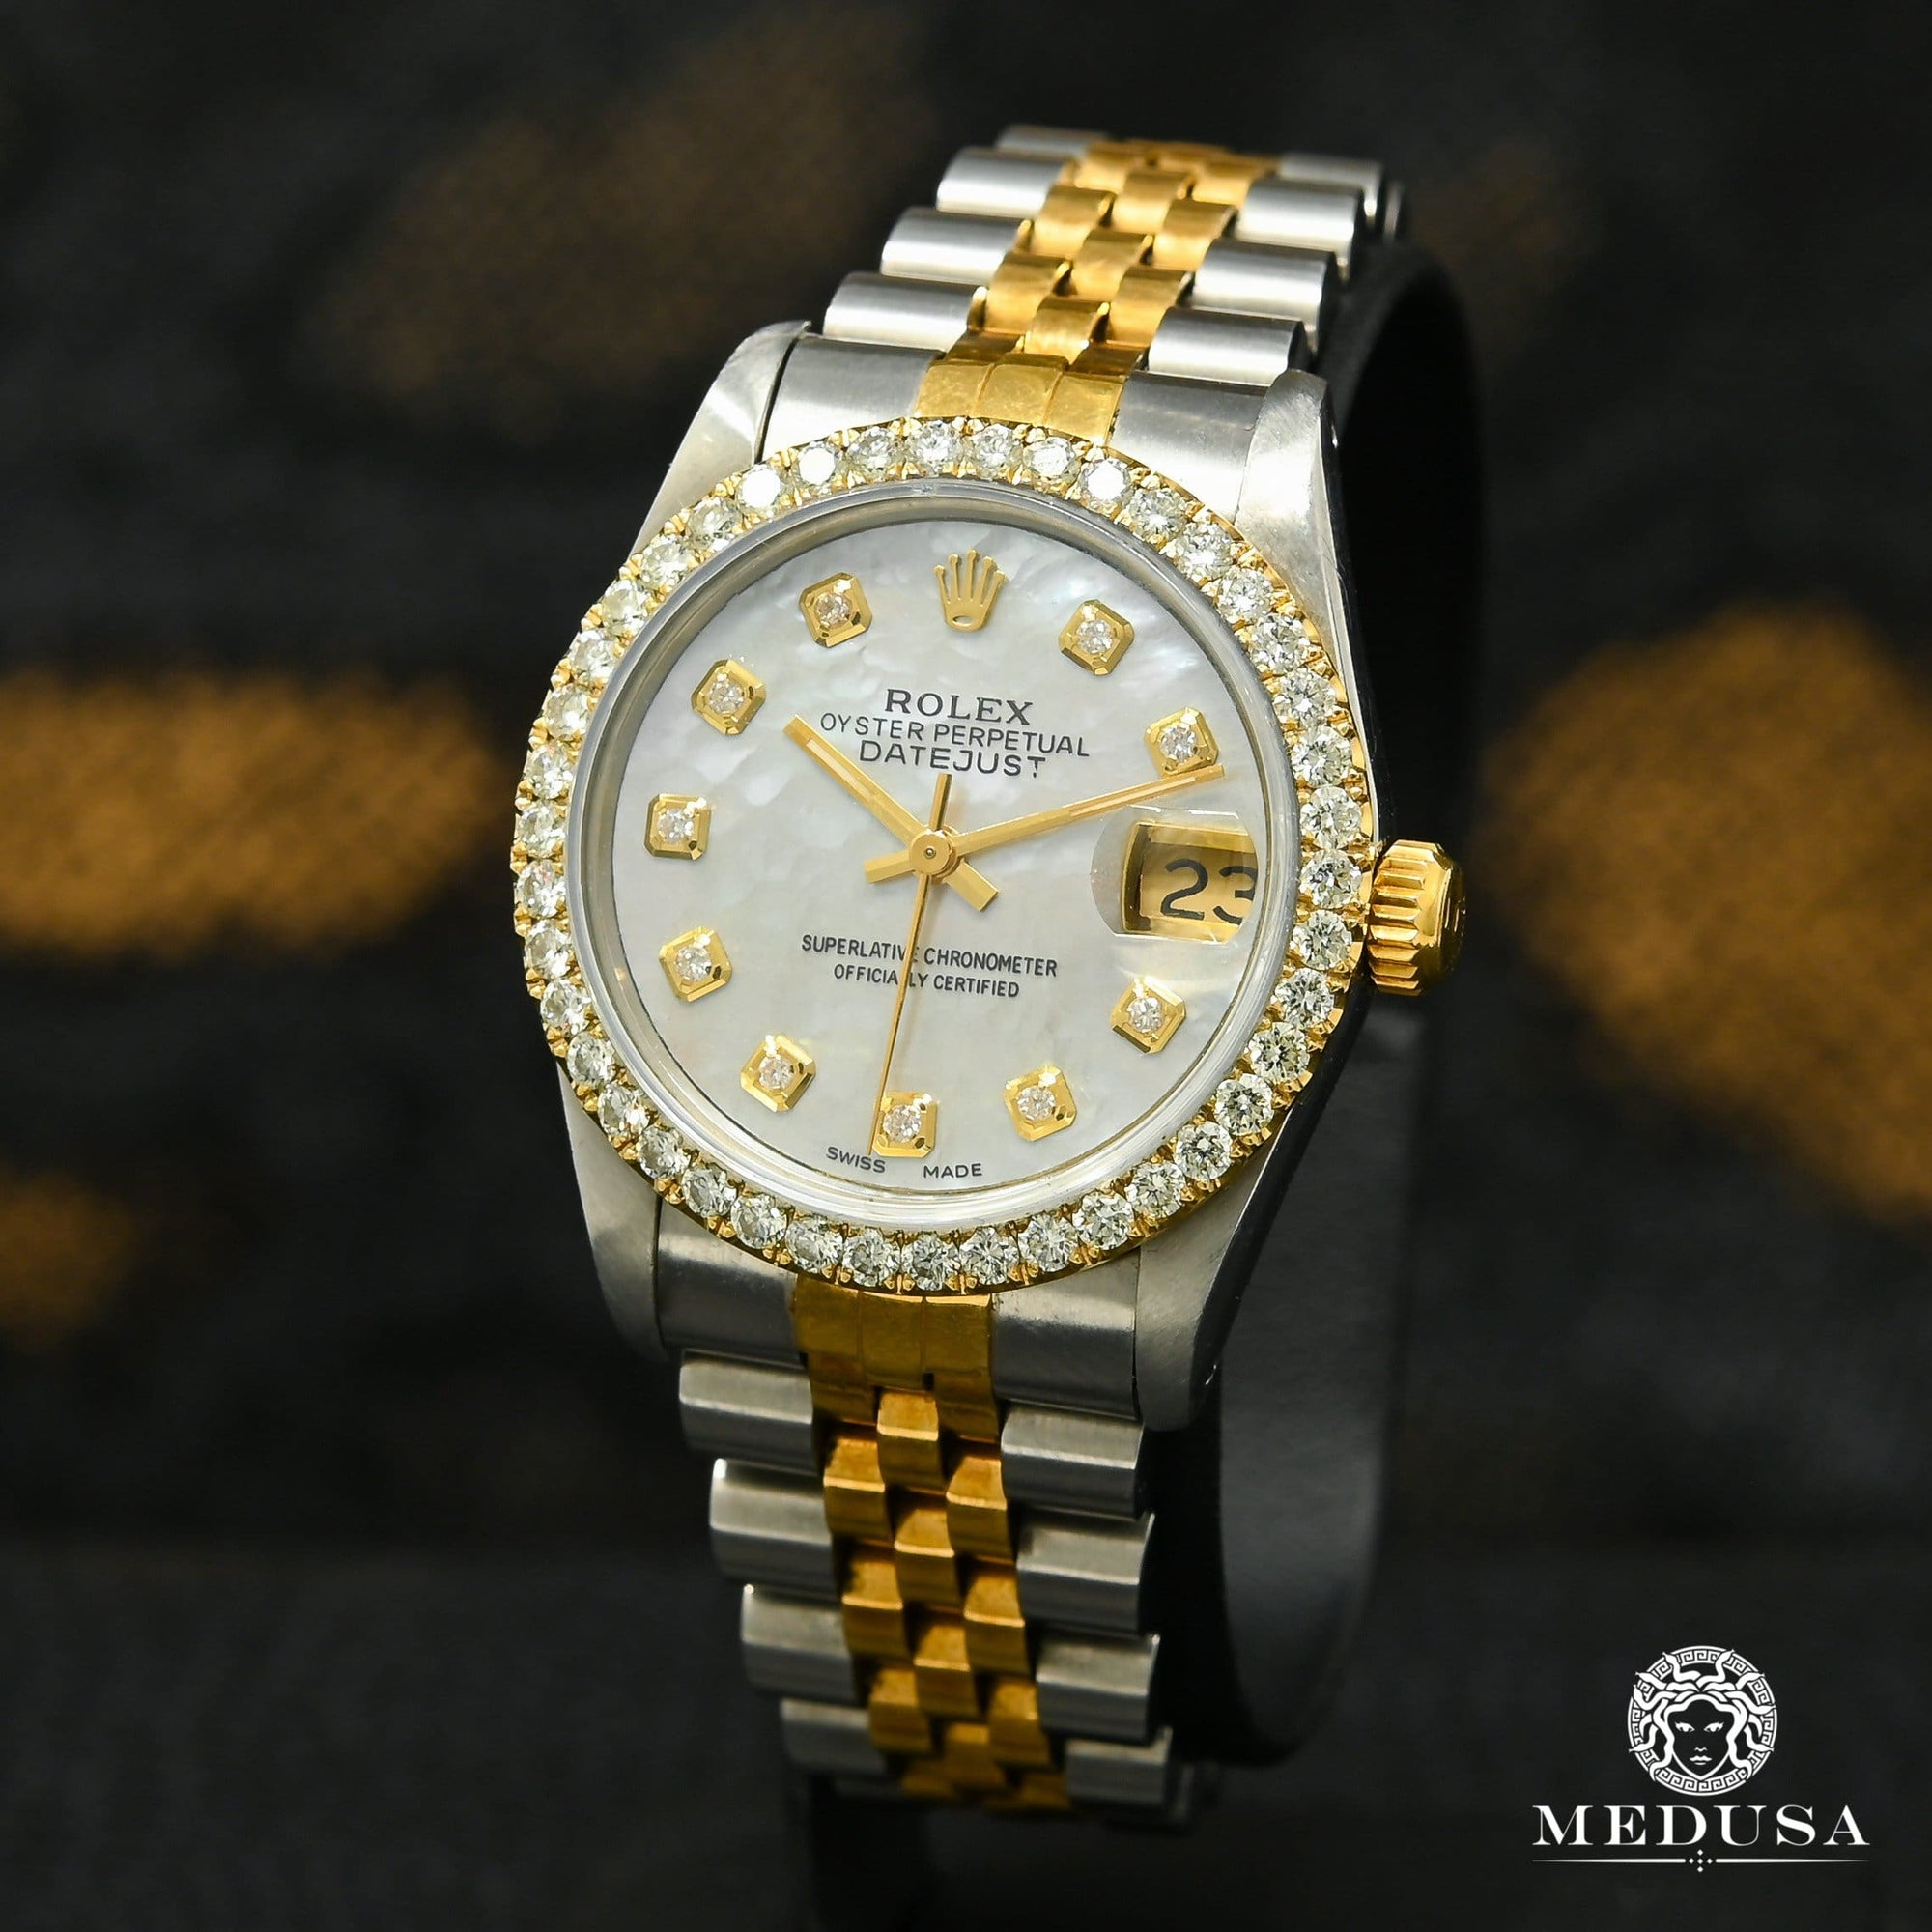 Rolex watch | Rolex Lady-Datejust 31mm Woman Watch - White `` Mother of Pearl '' Gold 2 Tones